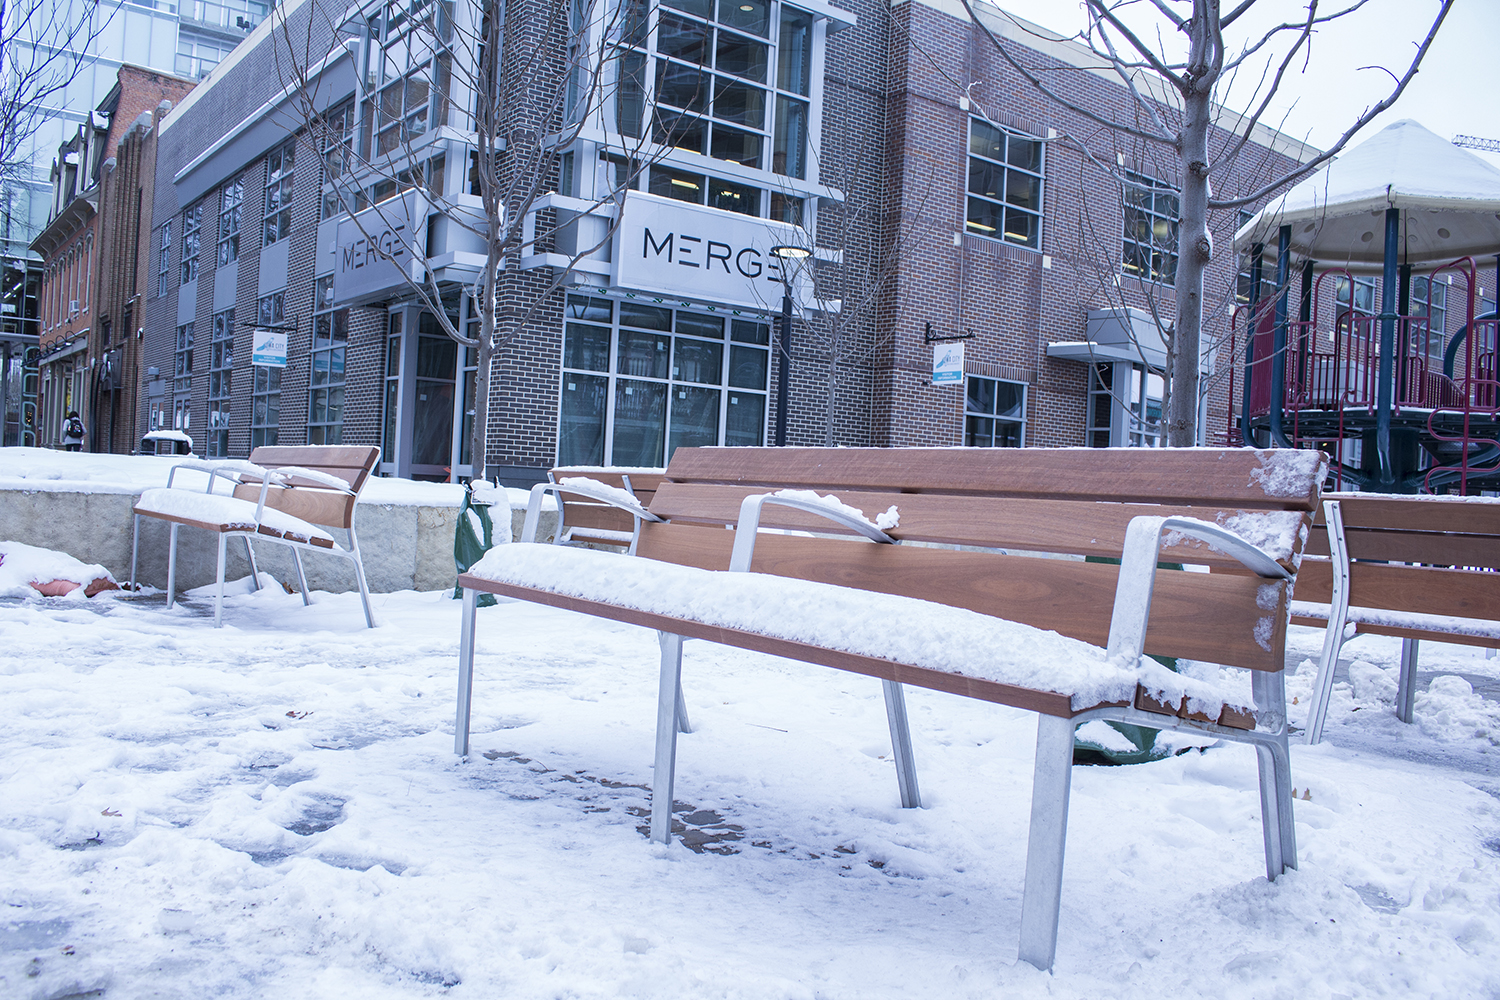 Benches are seen at the Ped Mall on Wednesday, November 28, 2018.